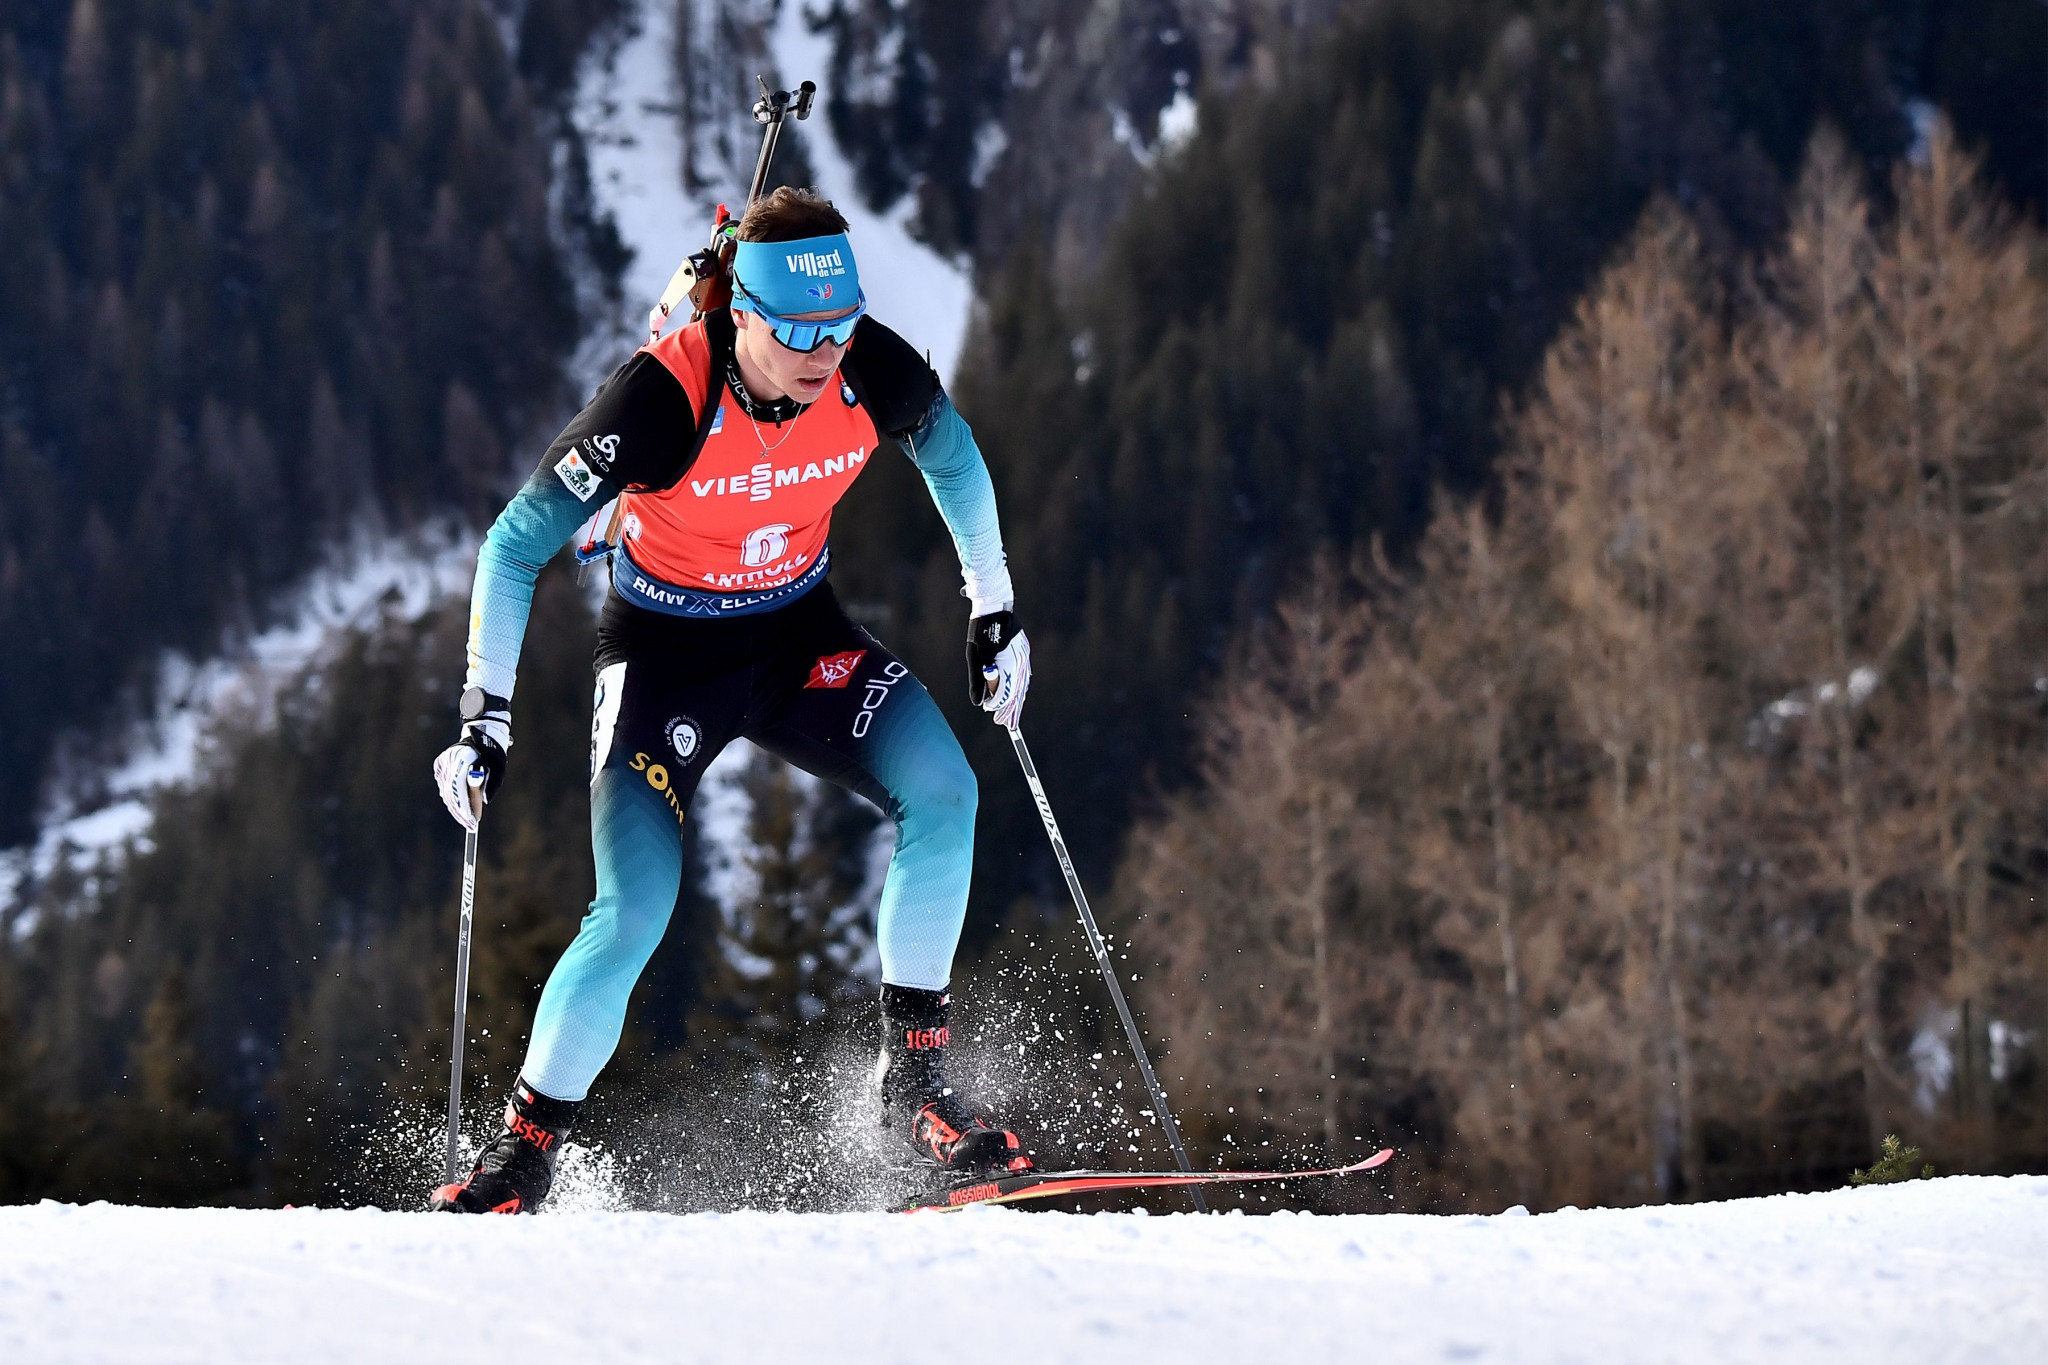 Jacquelin wins men's pursuit to clinch first major title at Biathlon World Championships